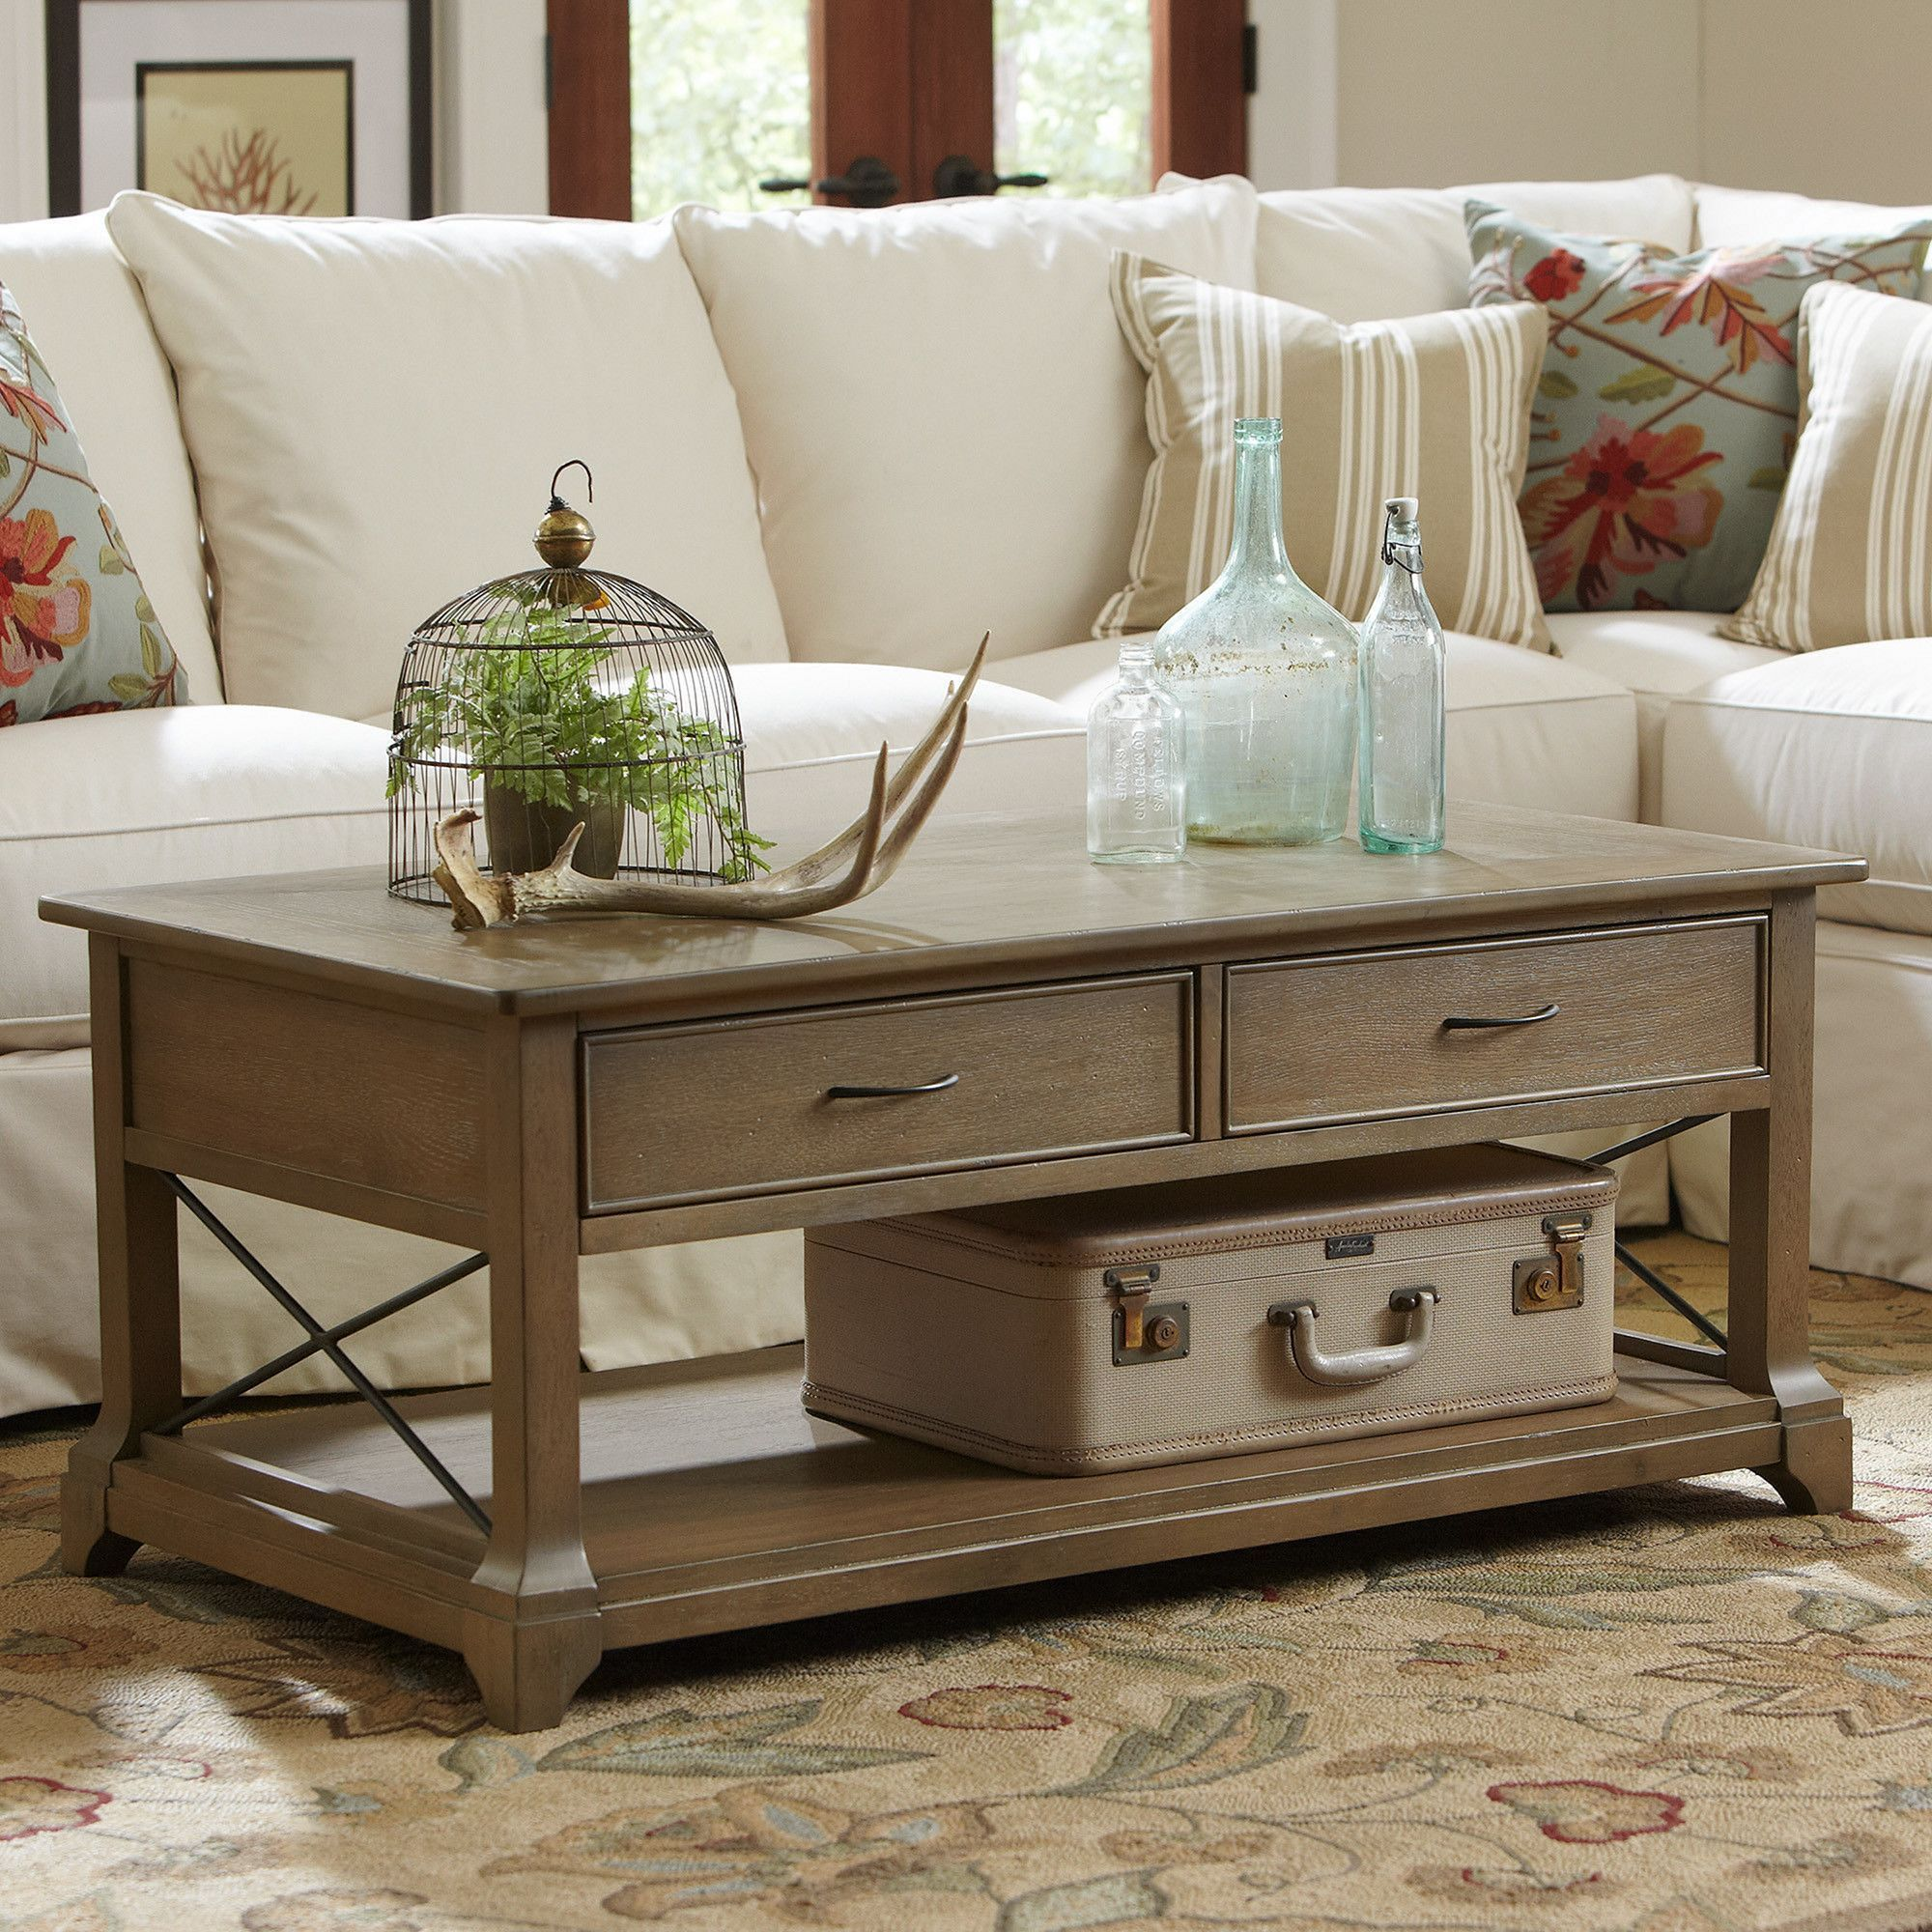 20 Lovely Farmhouse Living Table Furniture Ideas That Will Make Comfortable Your Guests Teracee Coffee Table With Storage Coffee Table Rectangle Coffee And End Tables [ 2000 x 2000 Pixel ]